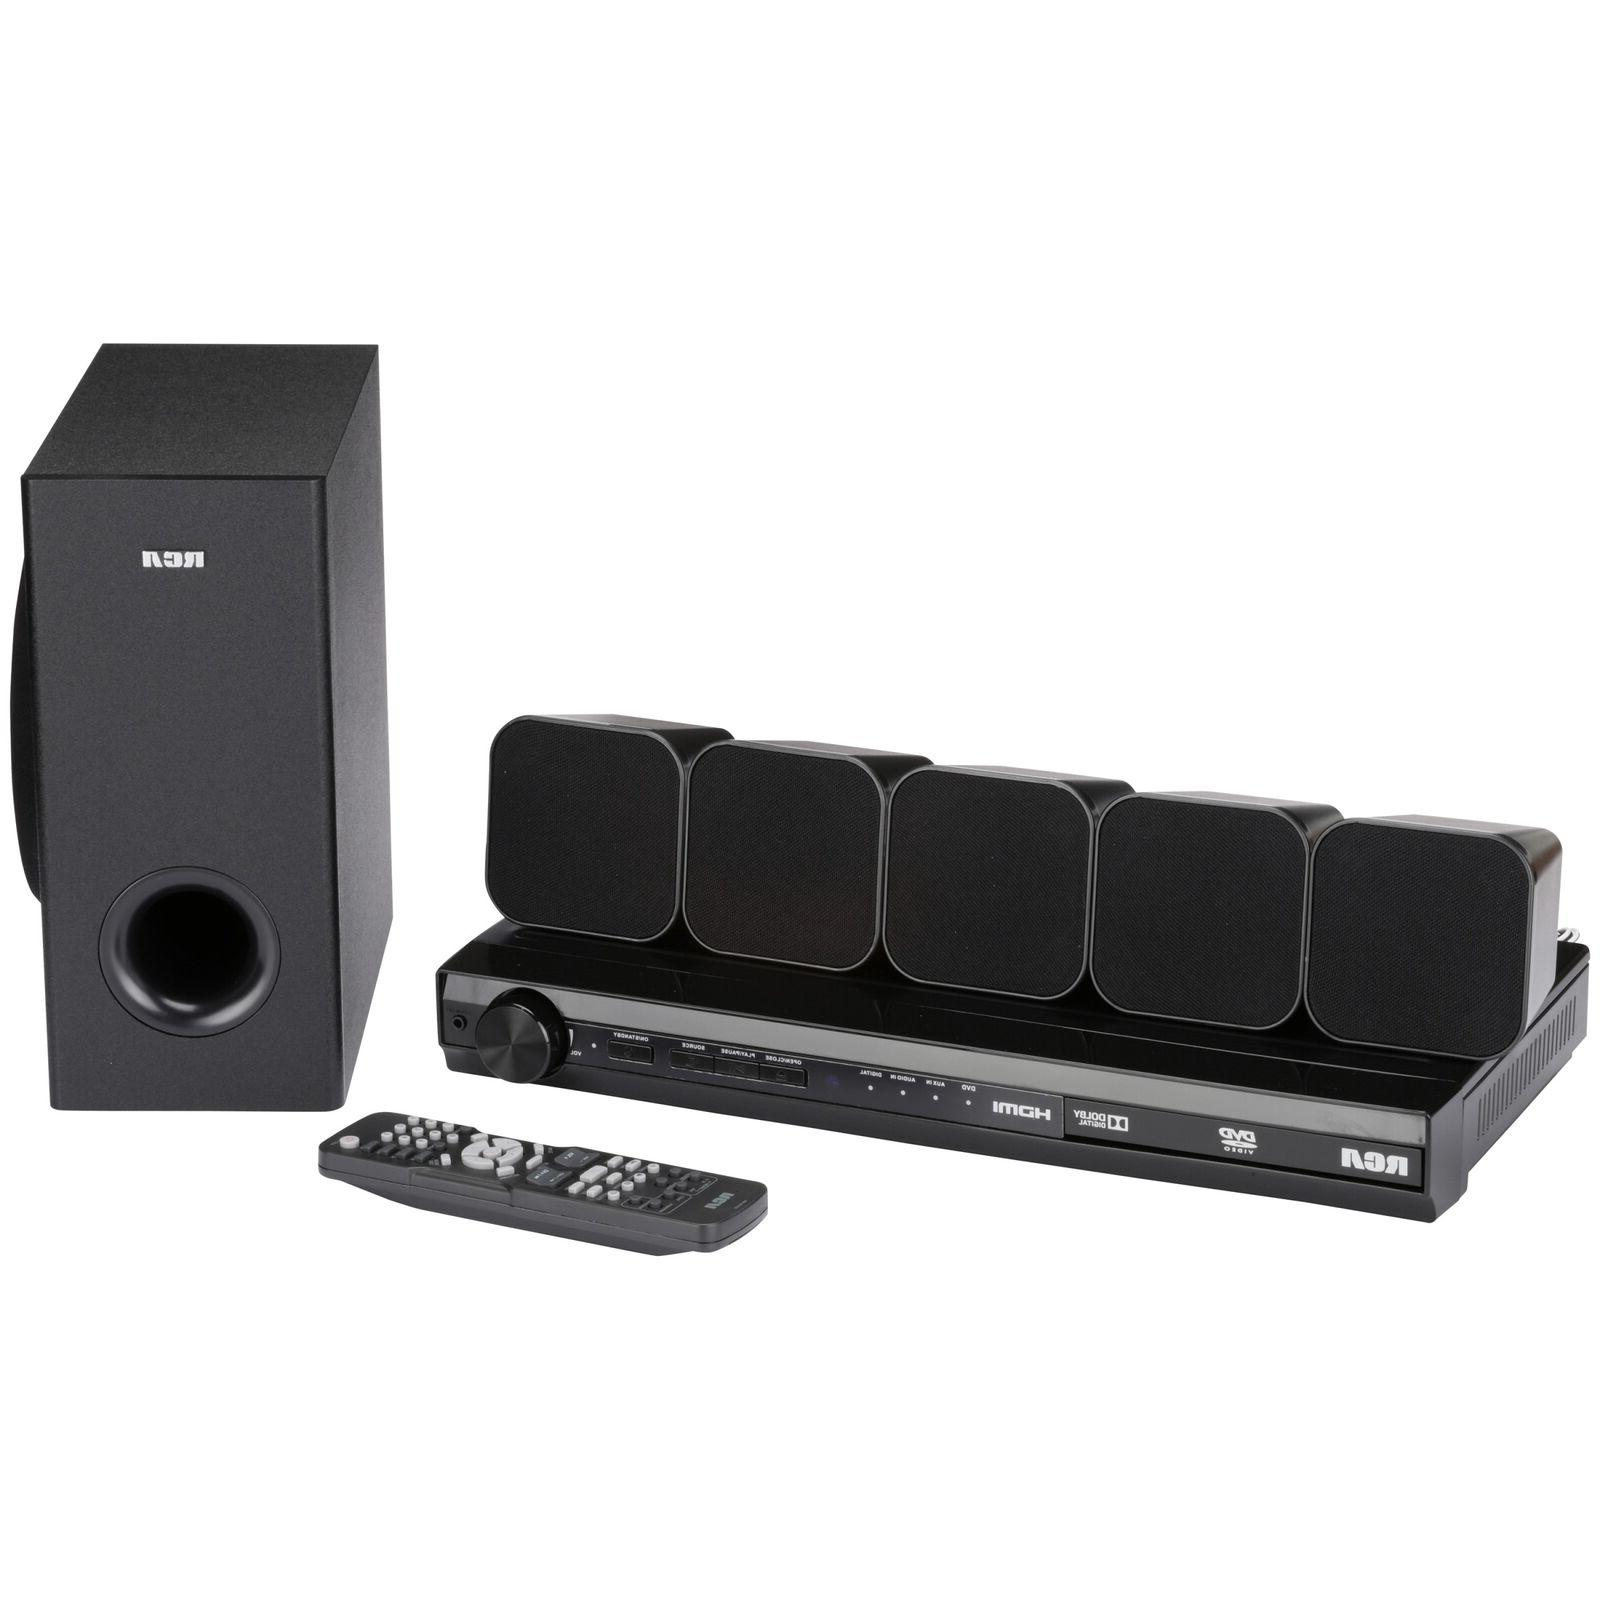 Home Theater System RCA DVD with HDMI 1080p Output 8 pc Box